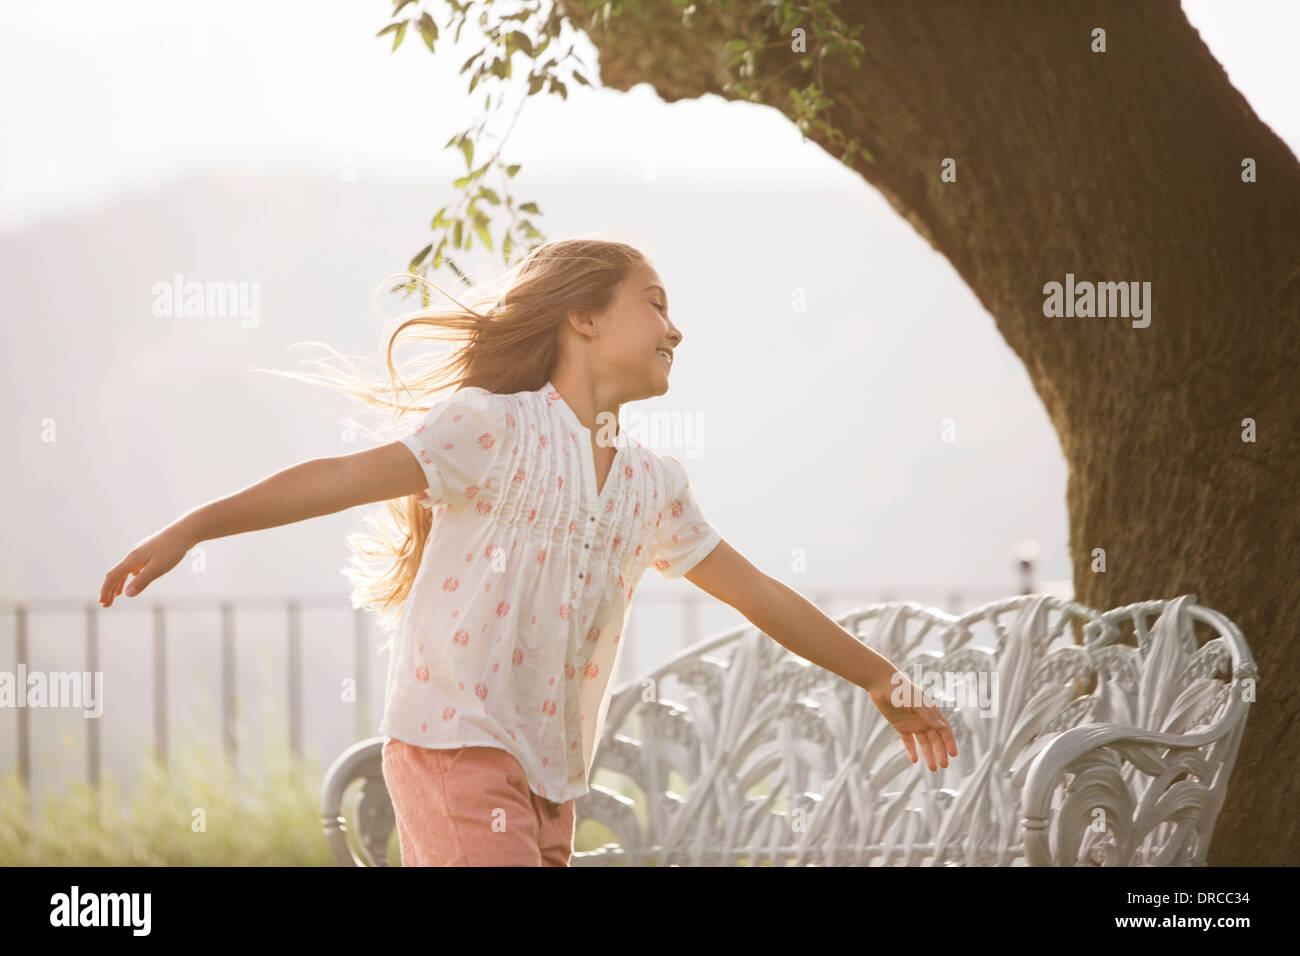 Girl running with arms outstretched - Stock Image